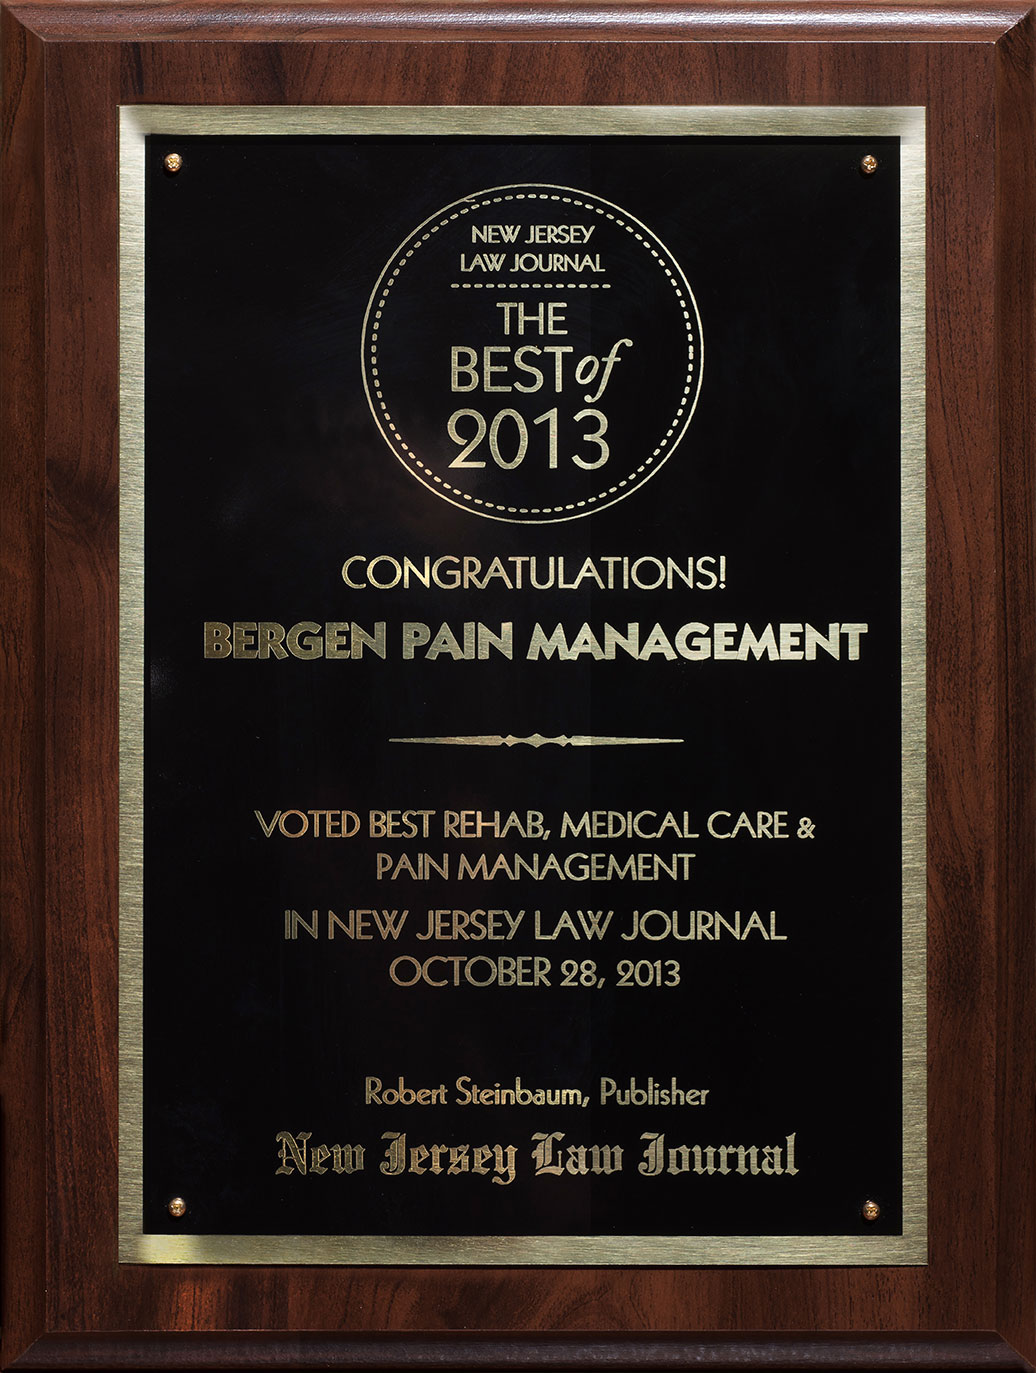 New Jersey Law Journal Best of 2013